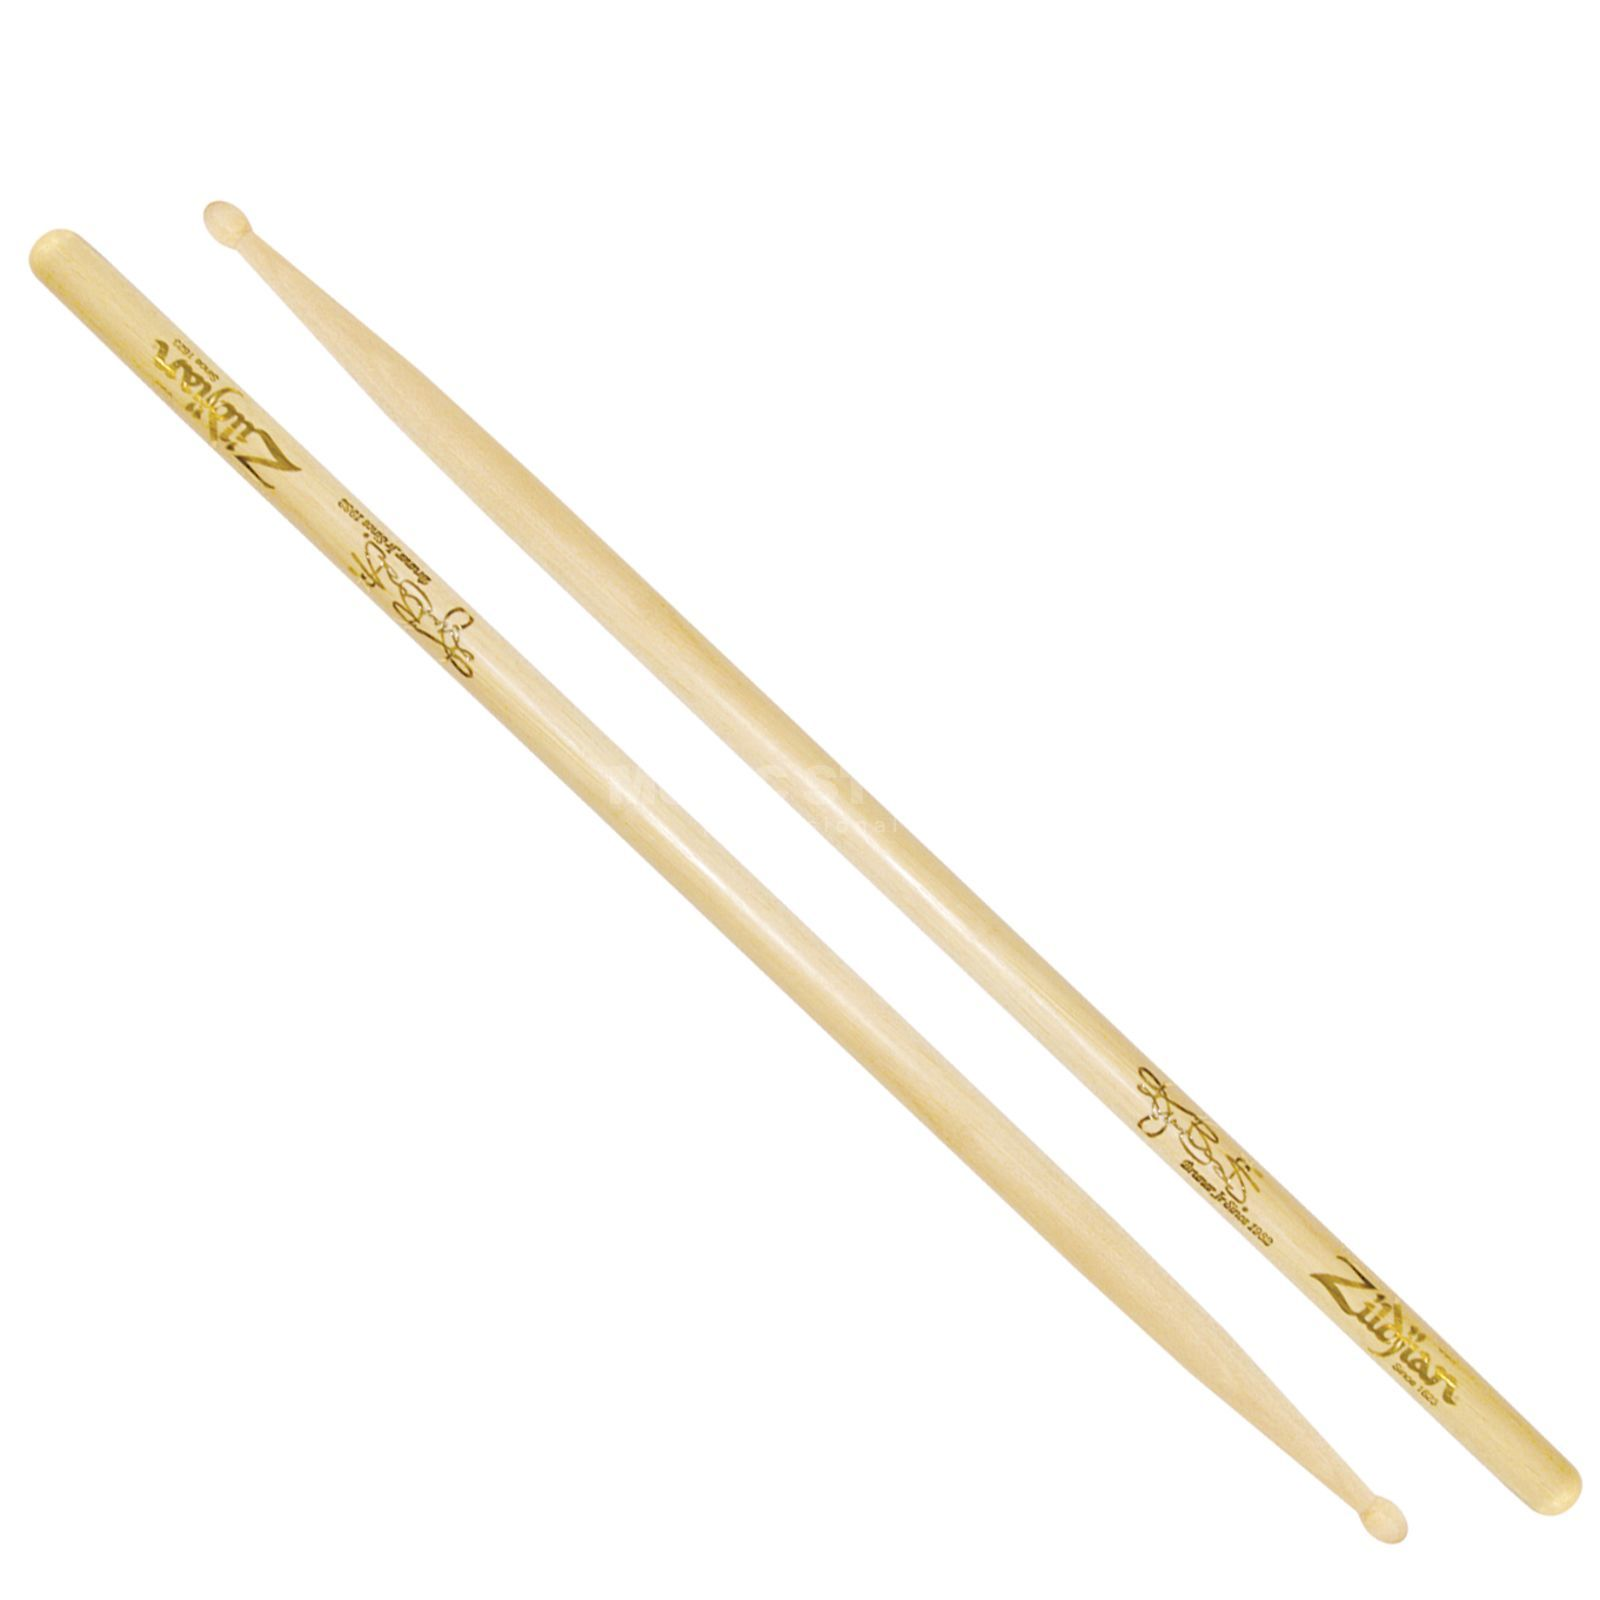 Zildjian Ronald Bruner Jr. Sticks, Orange Finish Produktbillede